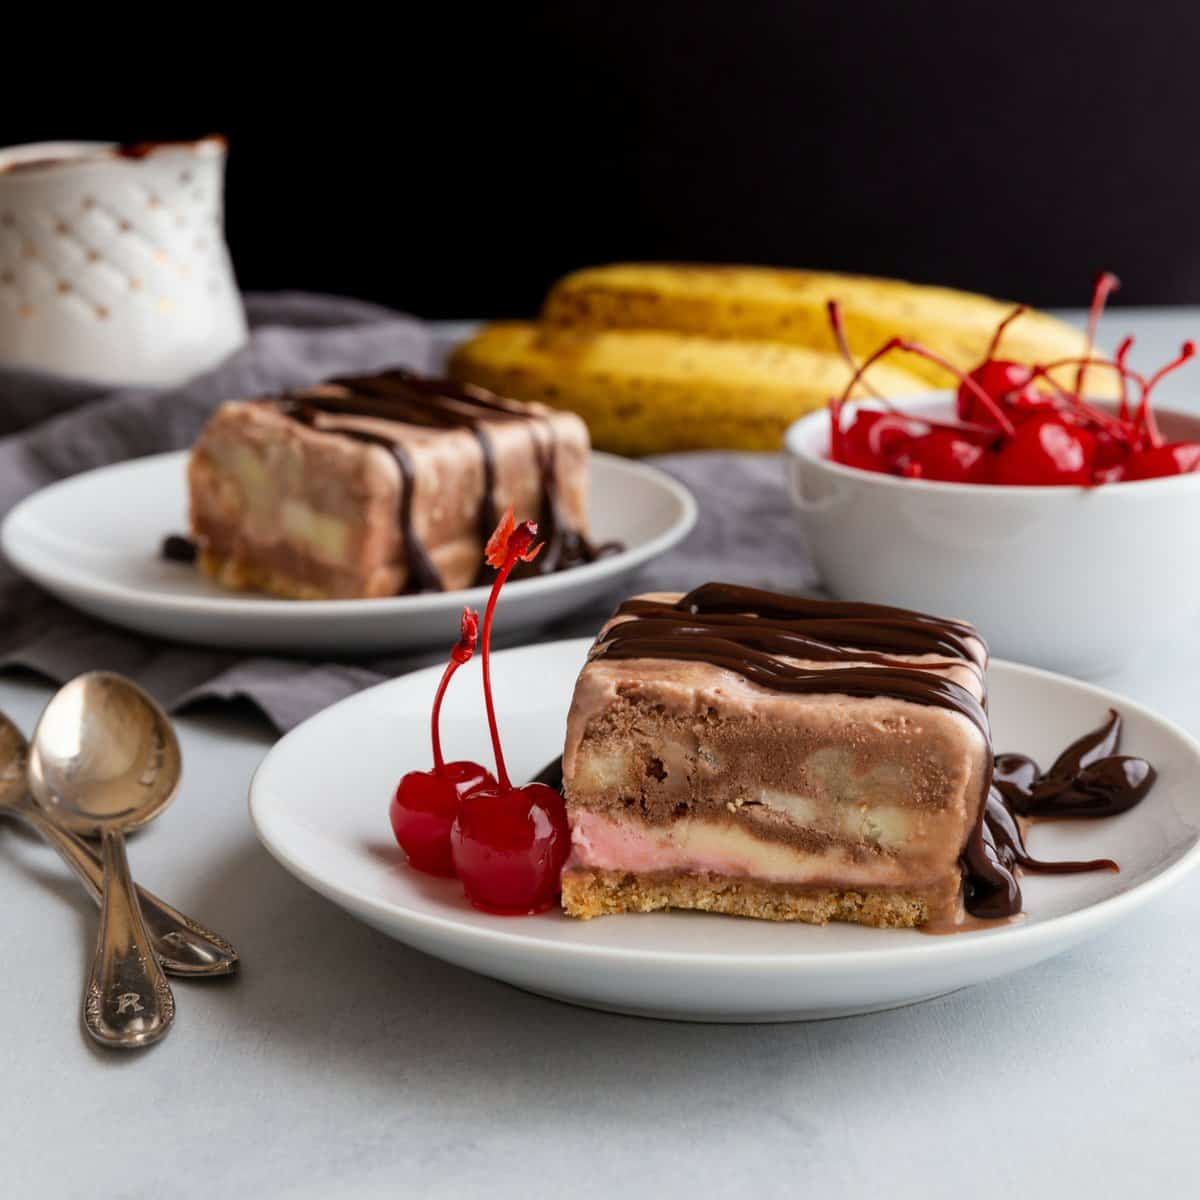 side view of a slice of no-bake banana split cake on a white plate with cherries